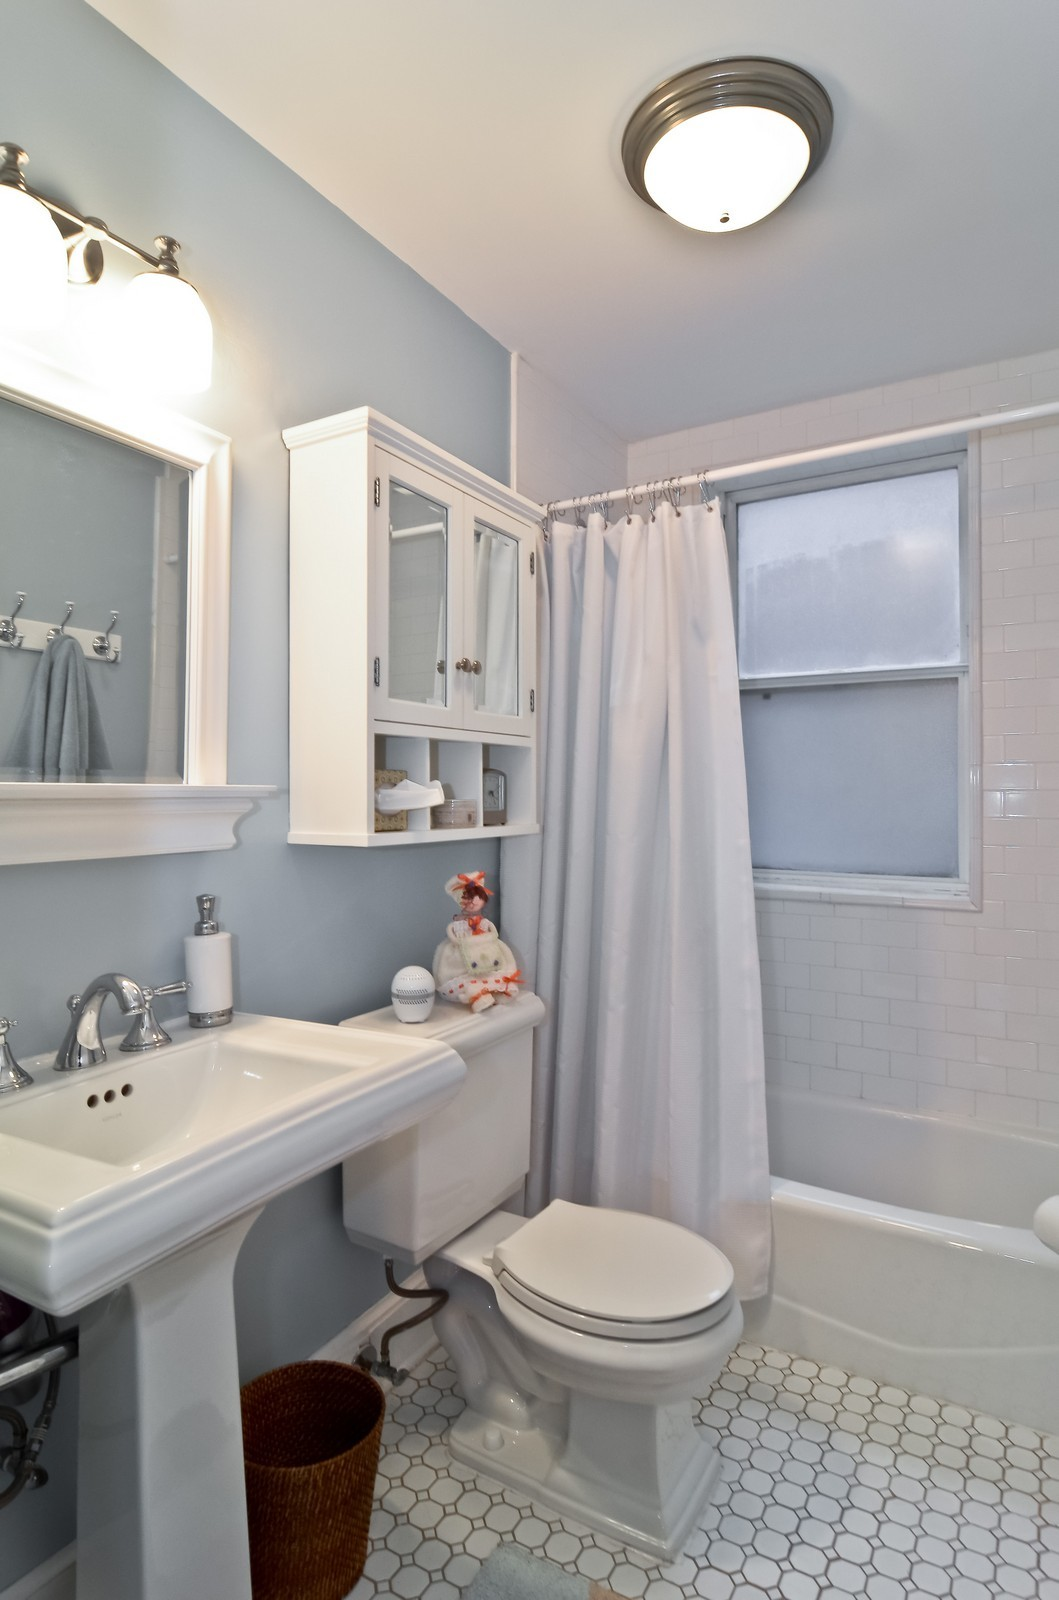 Real Estate Photography - 2020 N Burling, Unit 103, Chicago, IL, 60614 - Bathroom